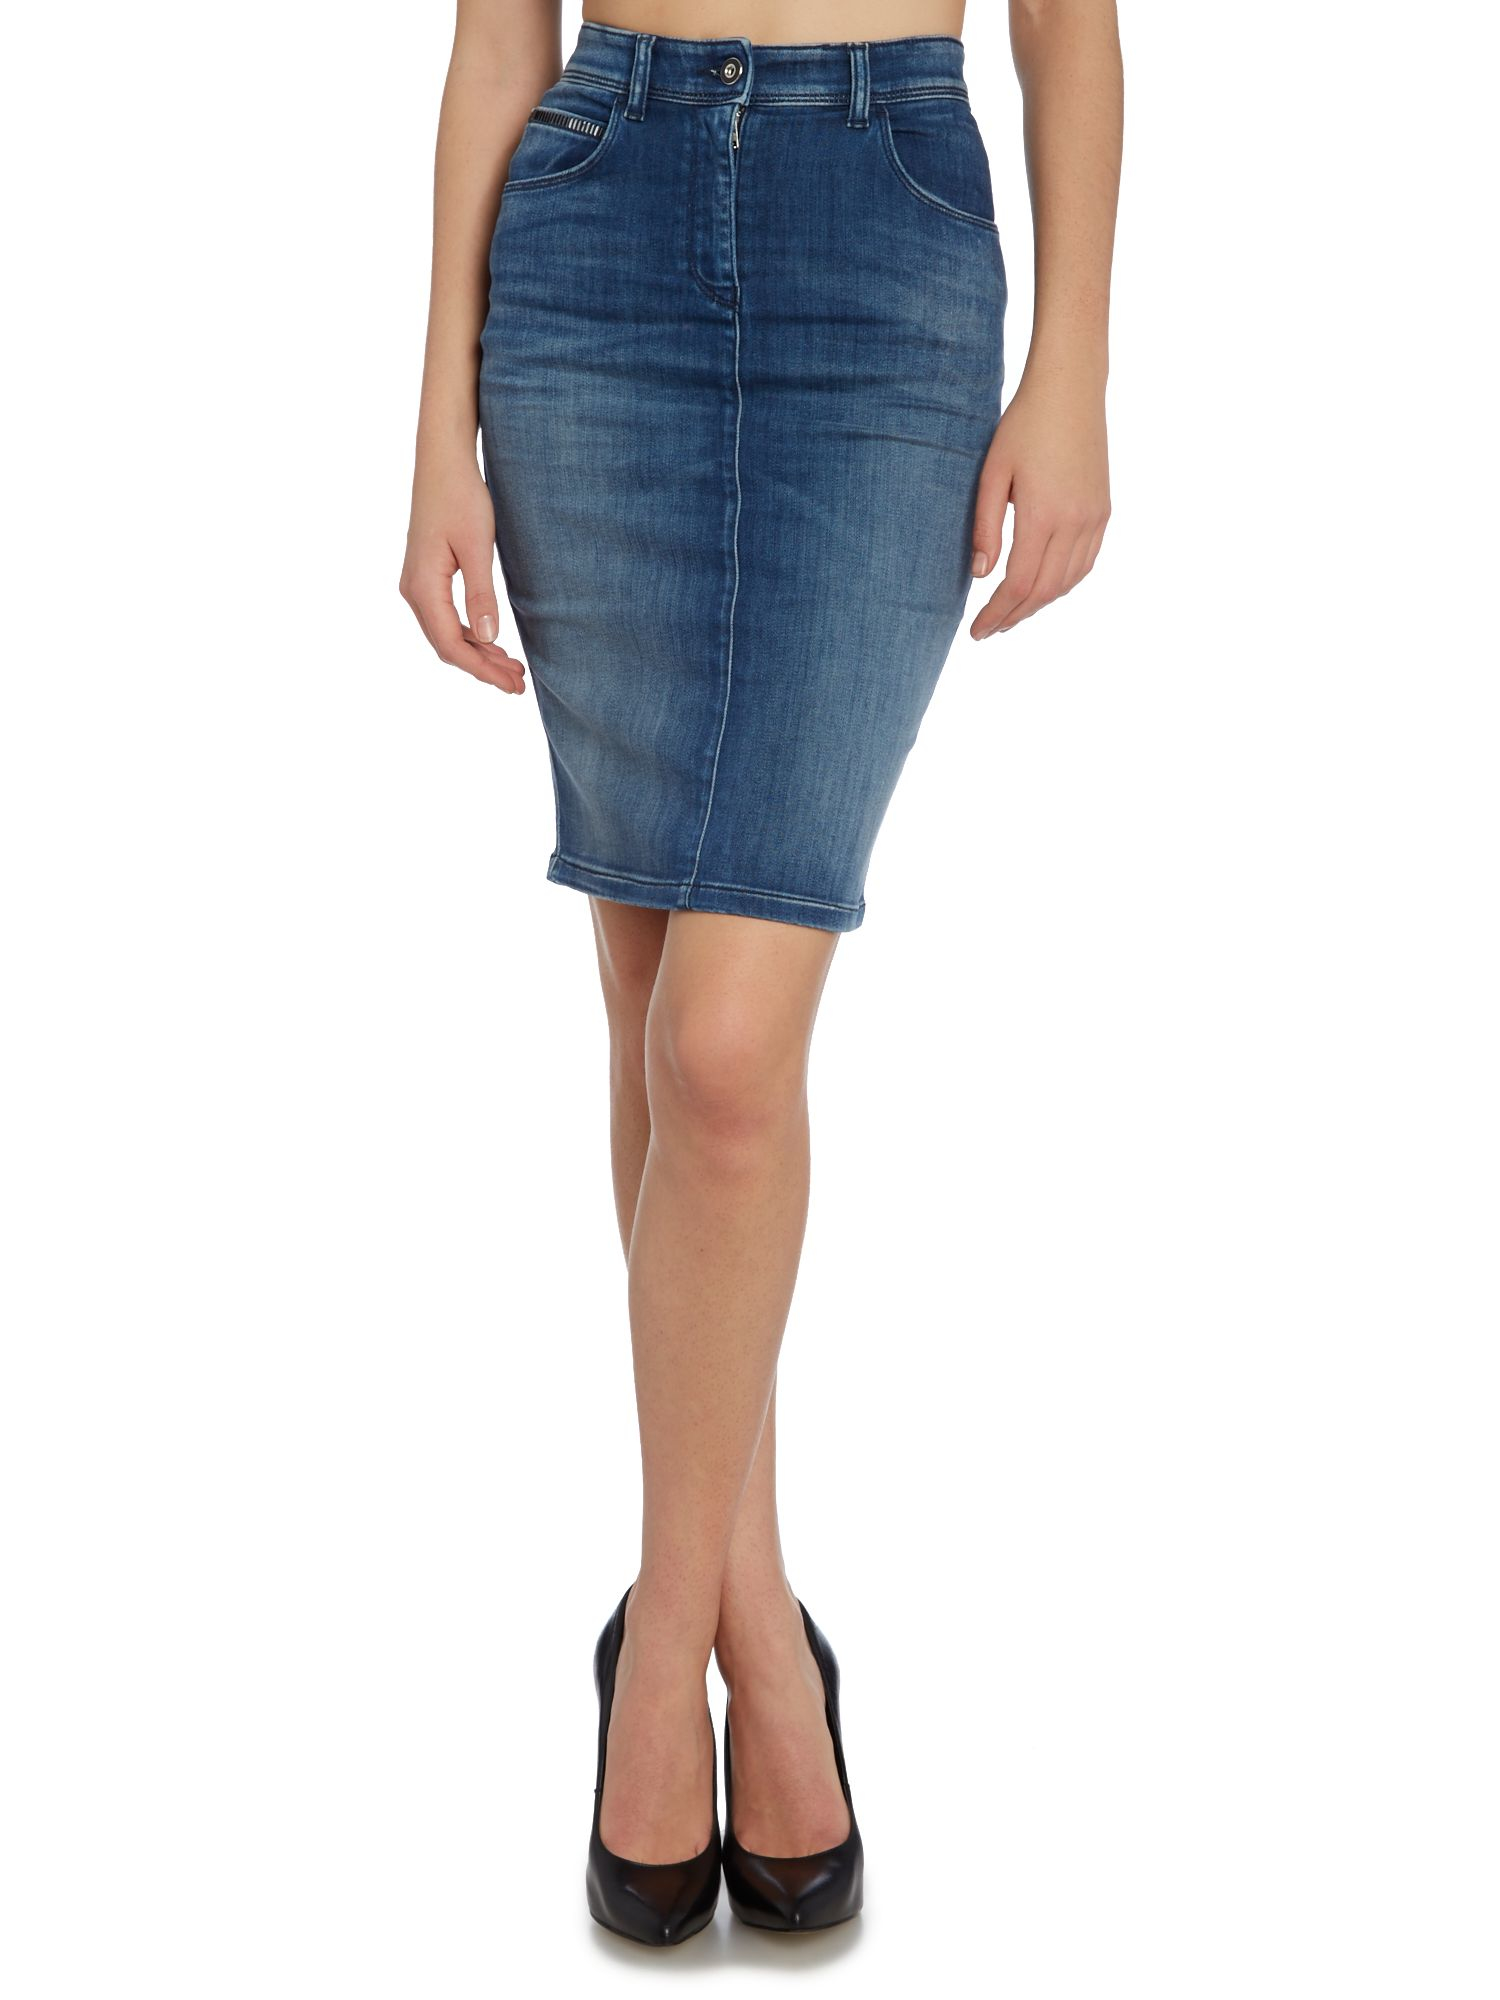 Women's High Waist Washed Jeans Skirts Denim Pencil Skirts $ 23 99 Prime. out of 5 stars ECHOINE. Women Distressed Stretch High Waist Knee Length Denim Pencil Skirt. from $ 24 90 Prime. 3 out of 5 stars 21 [BLANKNYC] Women's Denim Pencil Skirt $ 88 00 Prime. 5 out of 5 stars 2. MSSHE.